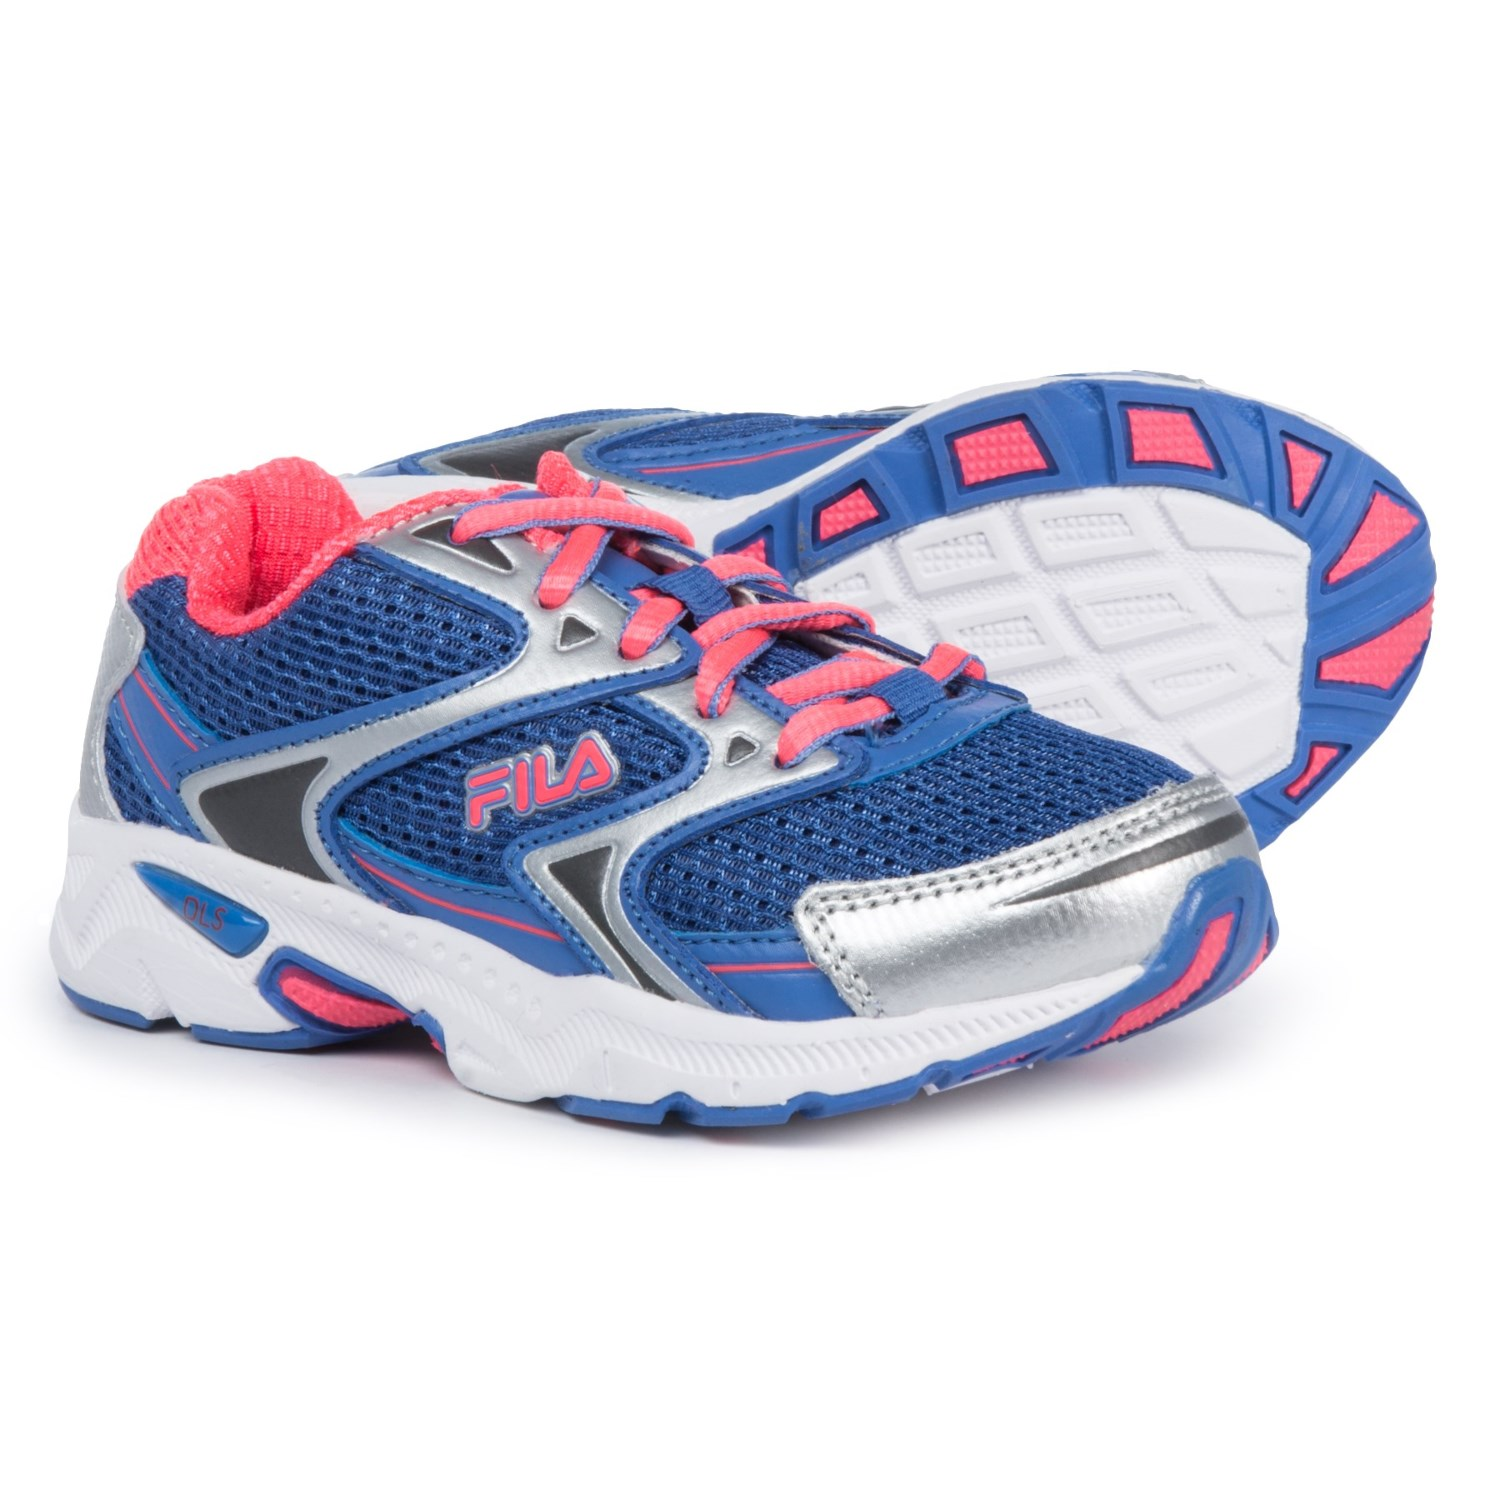 Fila Xtent 3 Running Shoes For Girls Save